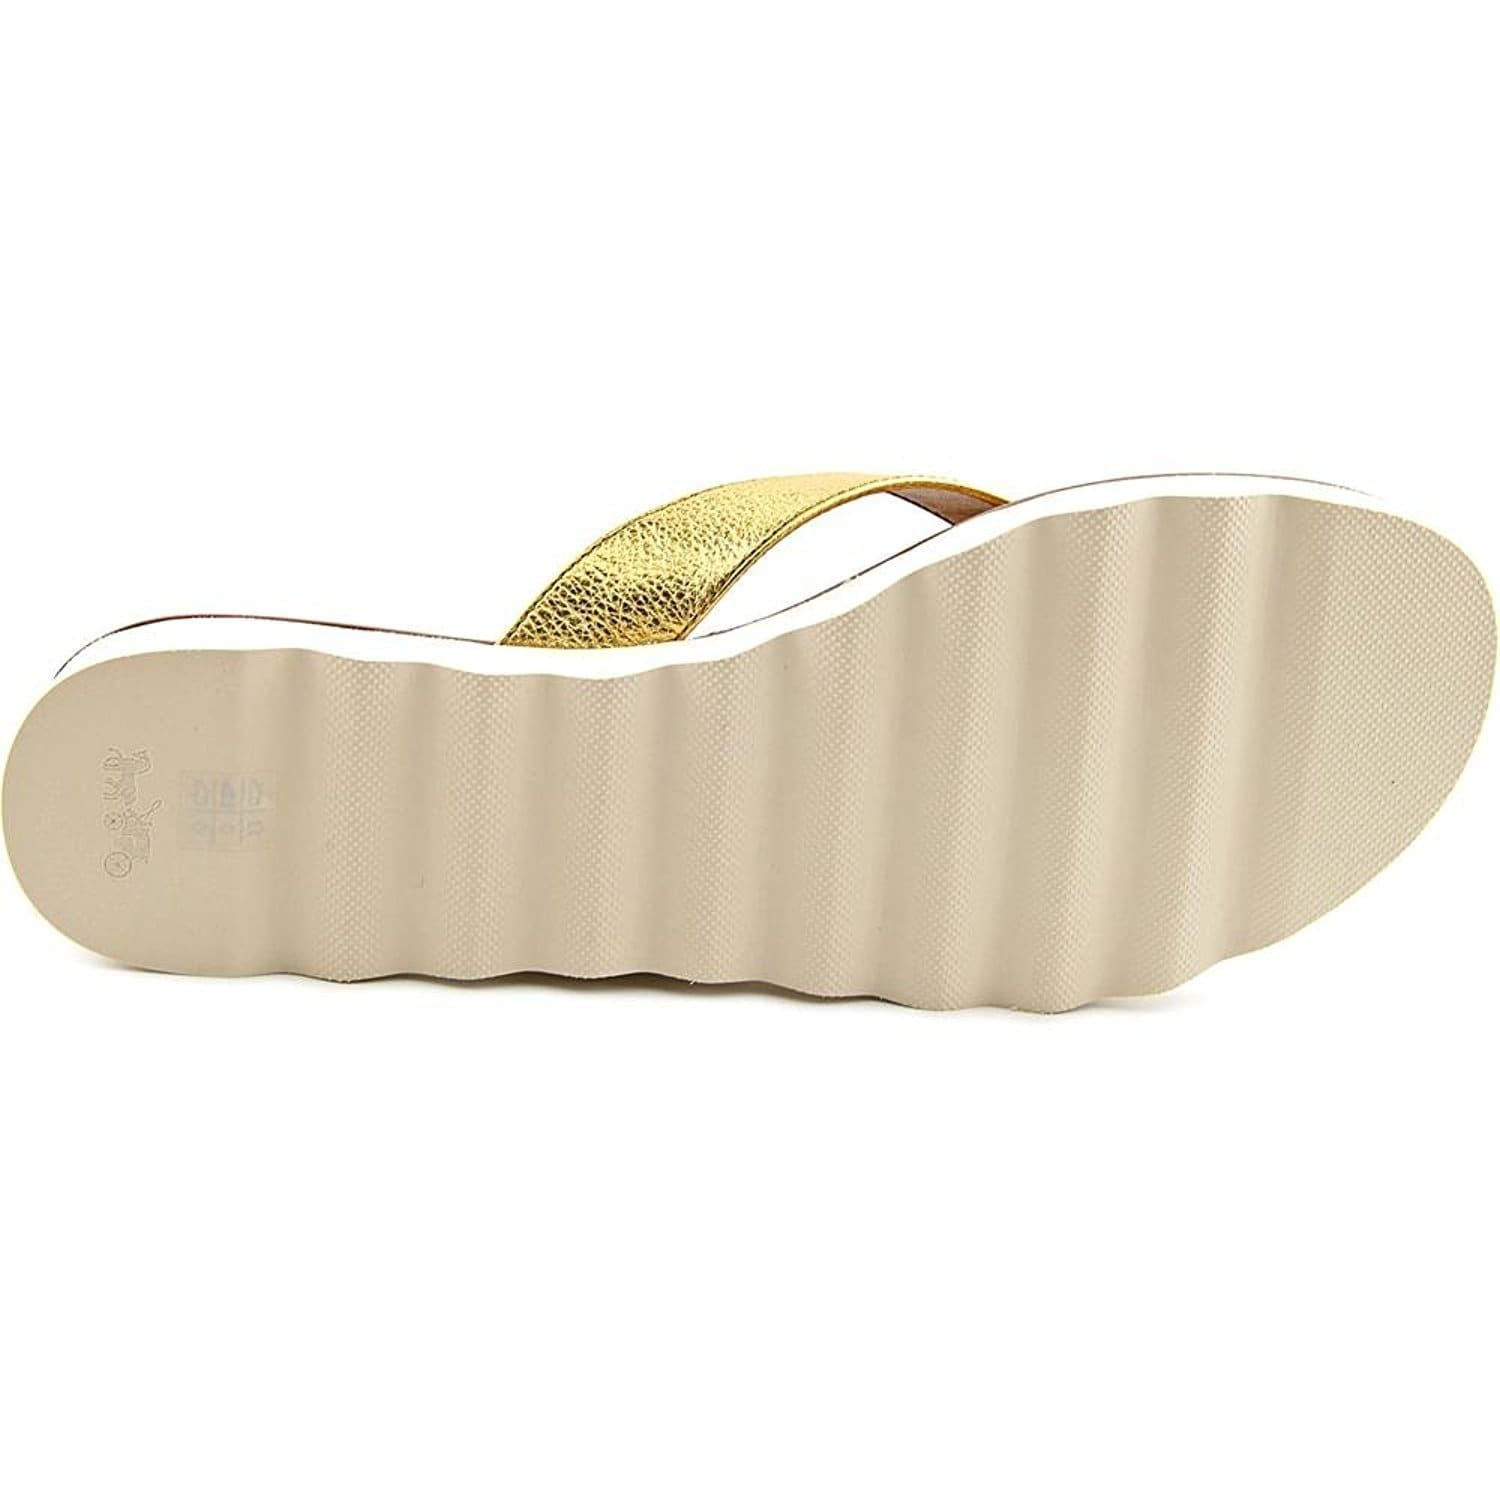 2818d2d69403 Shop Coach Womens Shelly Open Toe Casual - Free Shipping On Orders Over  45  - Overstock - 14537756